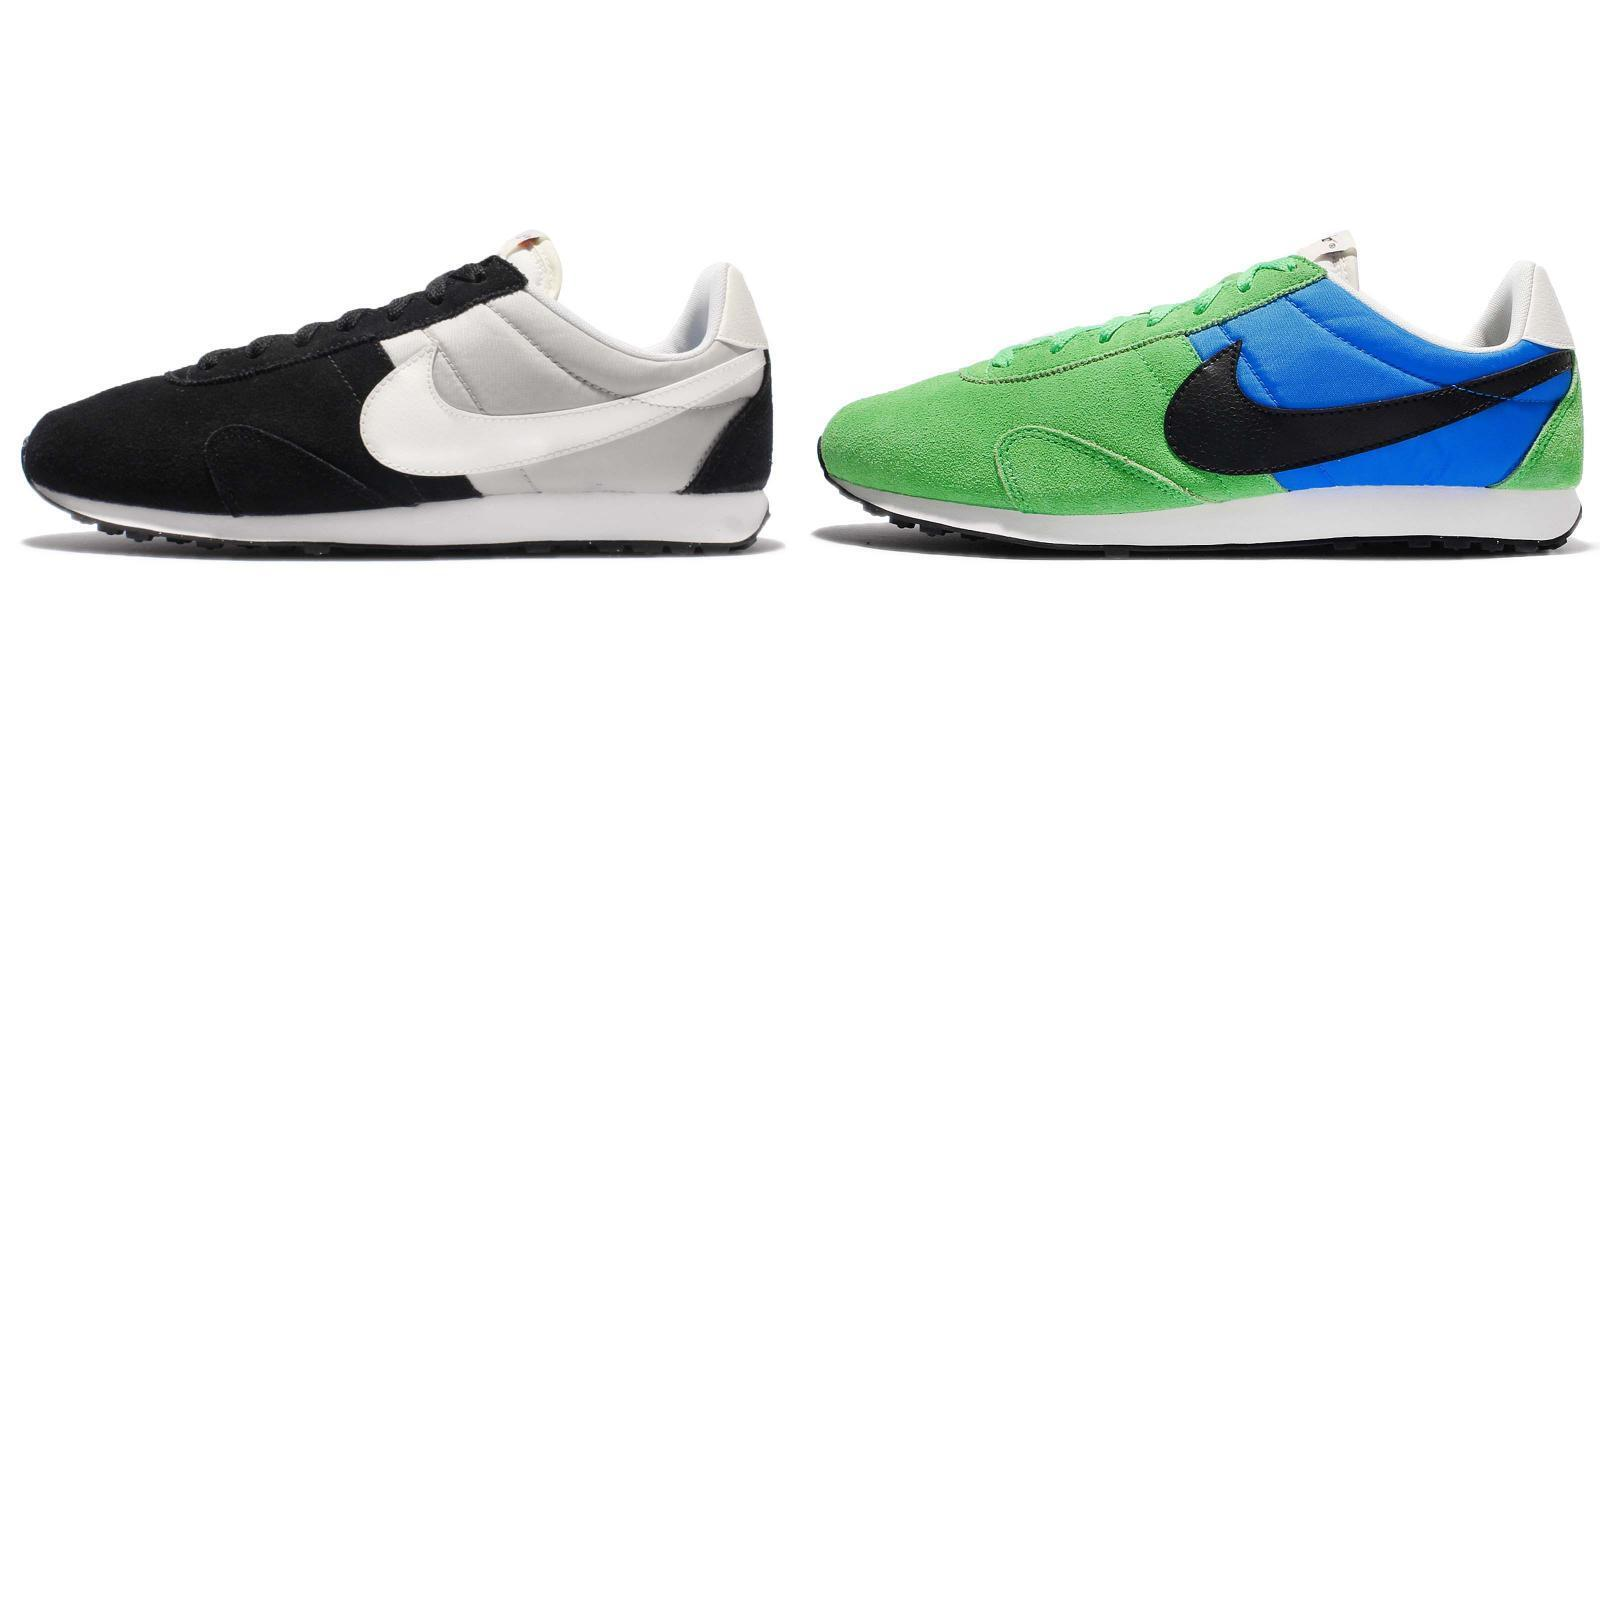 Nike Pre Montreal 17 Men Vintage Running Shoes Sneakers Trainers Pick 1 Black,Blue